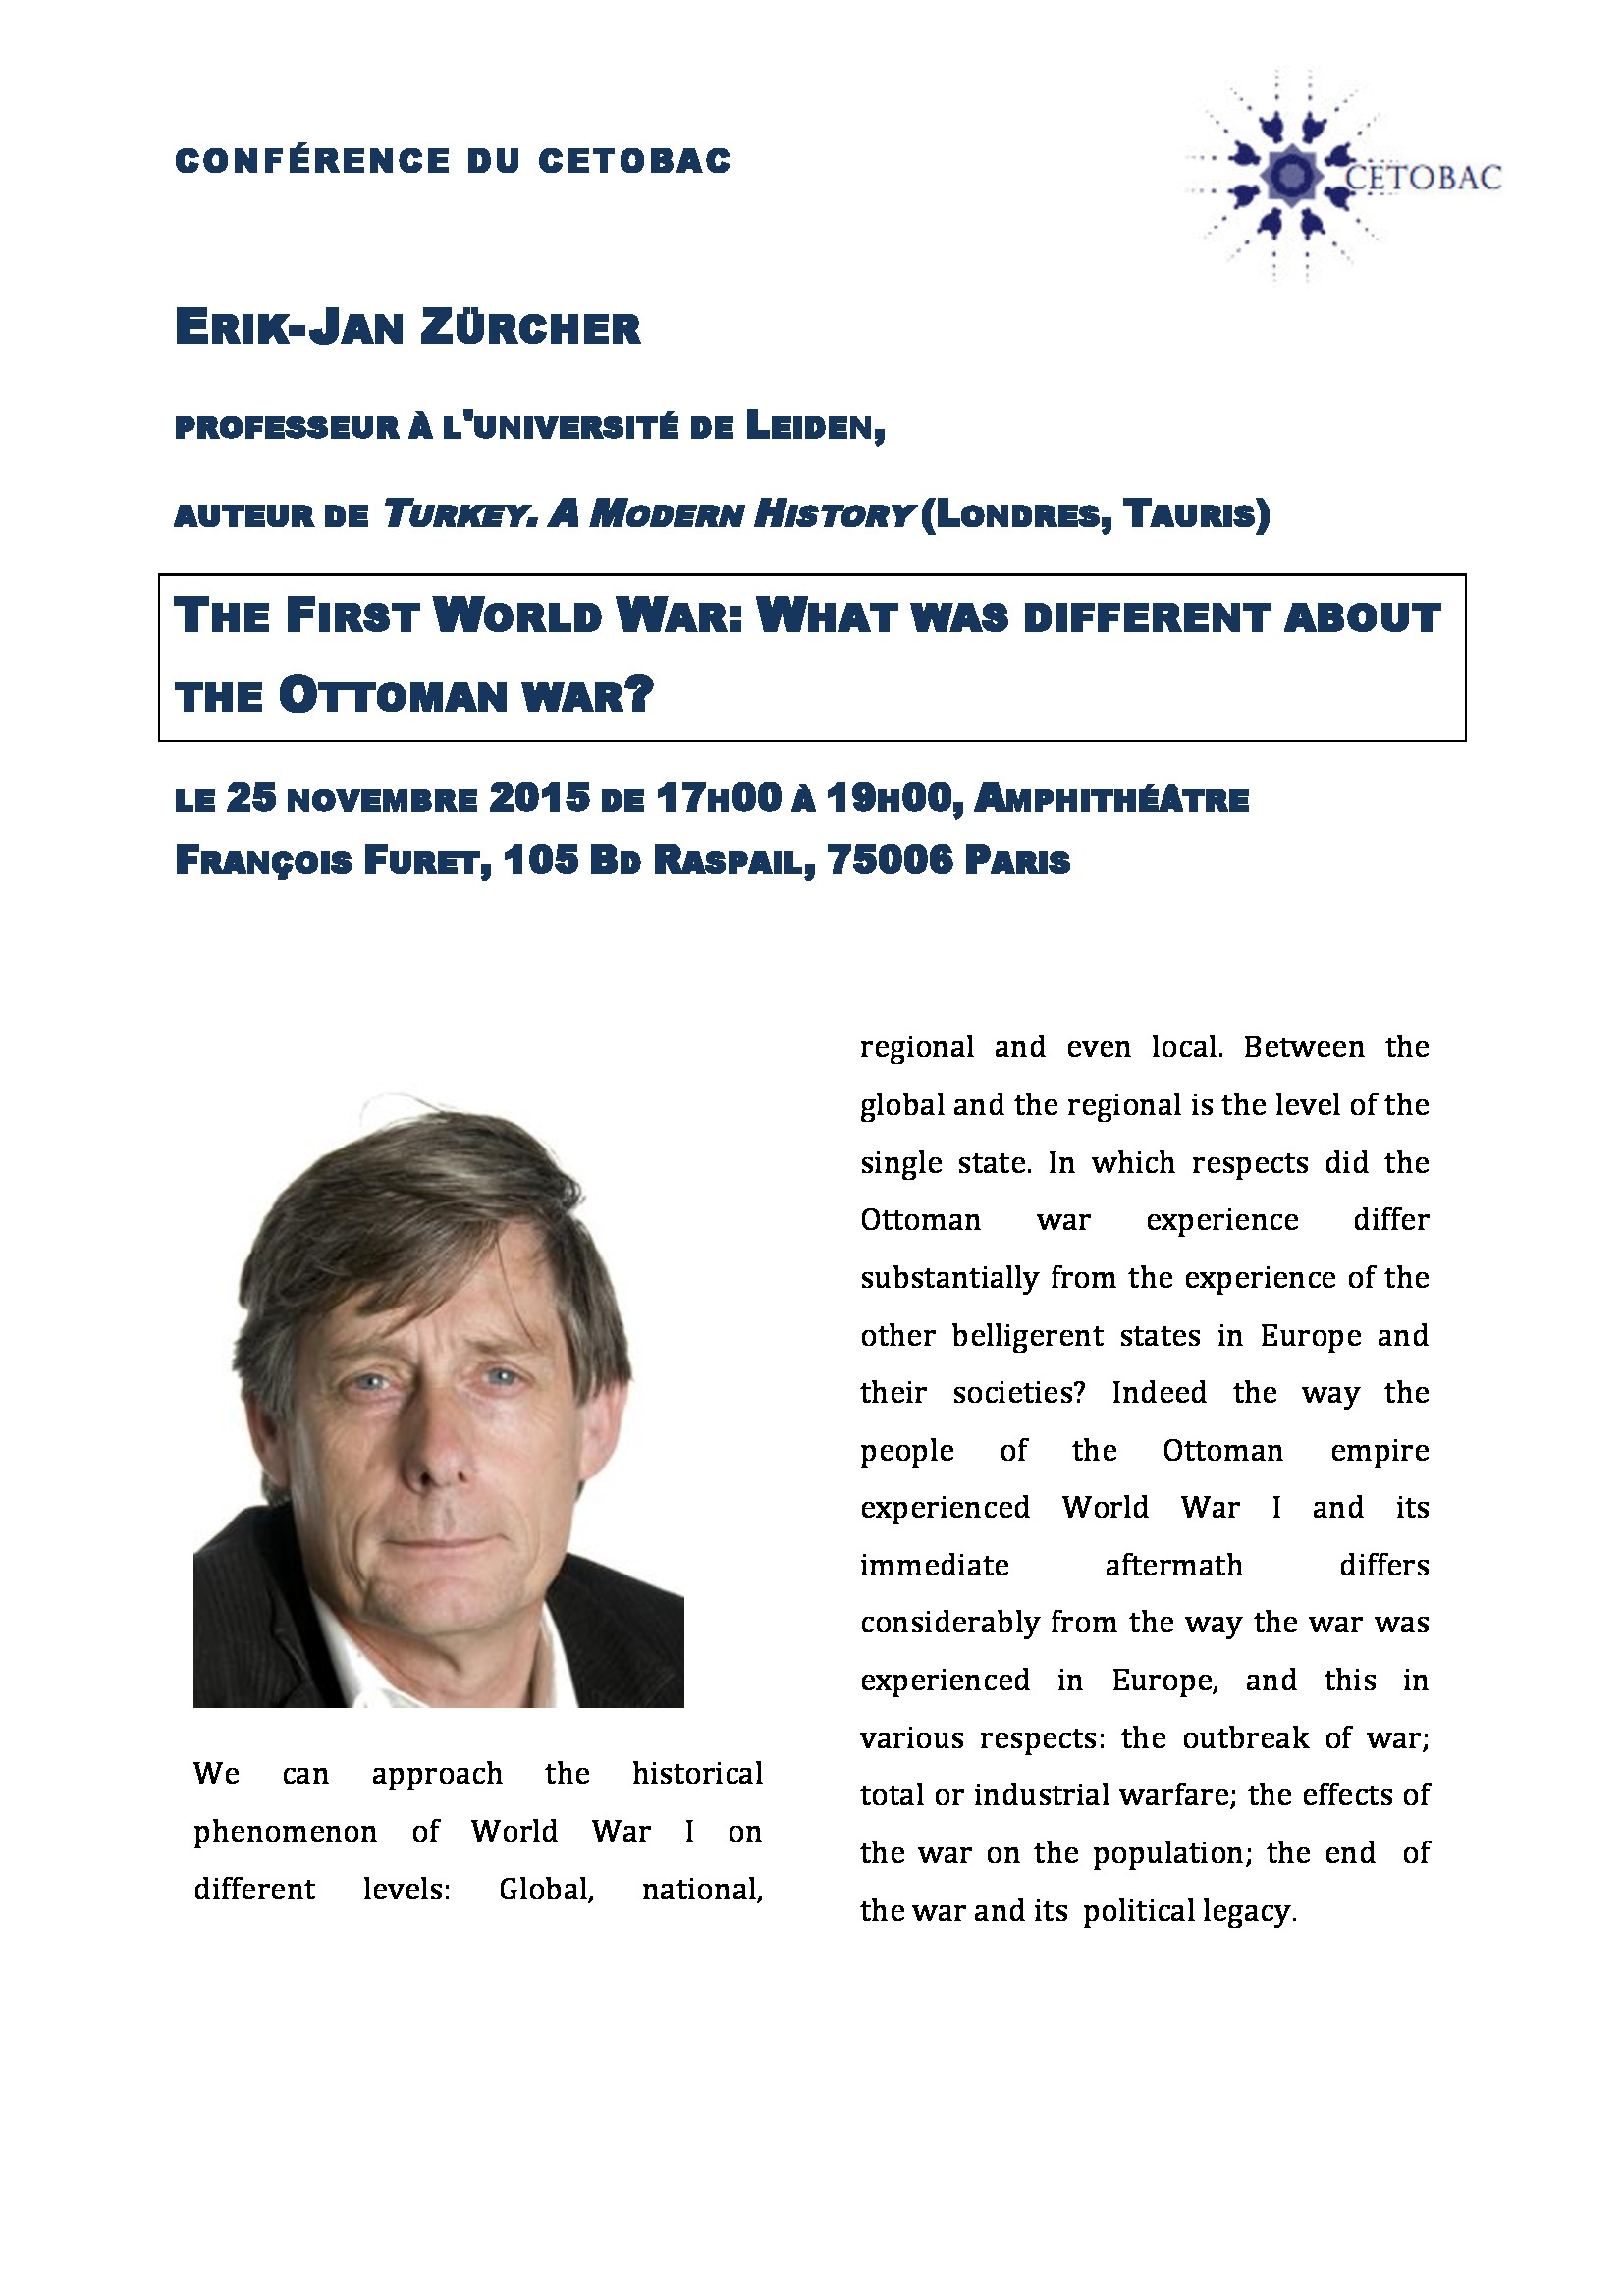 Conférence Erik-Jan Zürcher, professeur à l'université de Leiden : The First World War: What was different about the Ottoman war?, le 25 novembre 2015 de 17h00 à 19h00, Amphithéâtre François Furet, 105 Bd Raspail, 75006 Paris